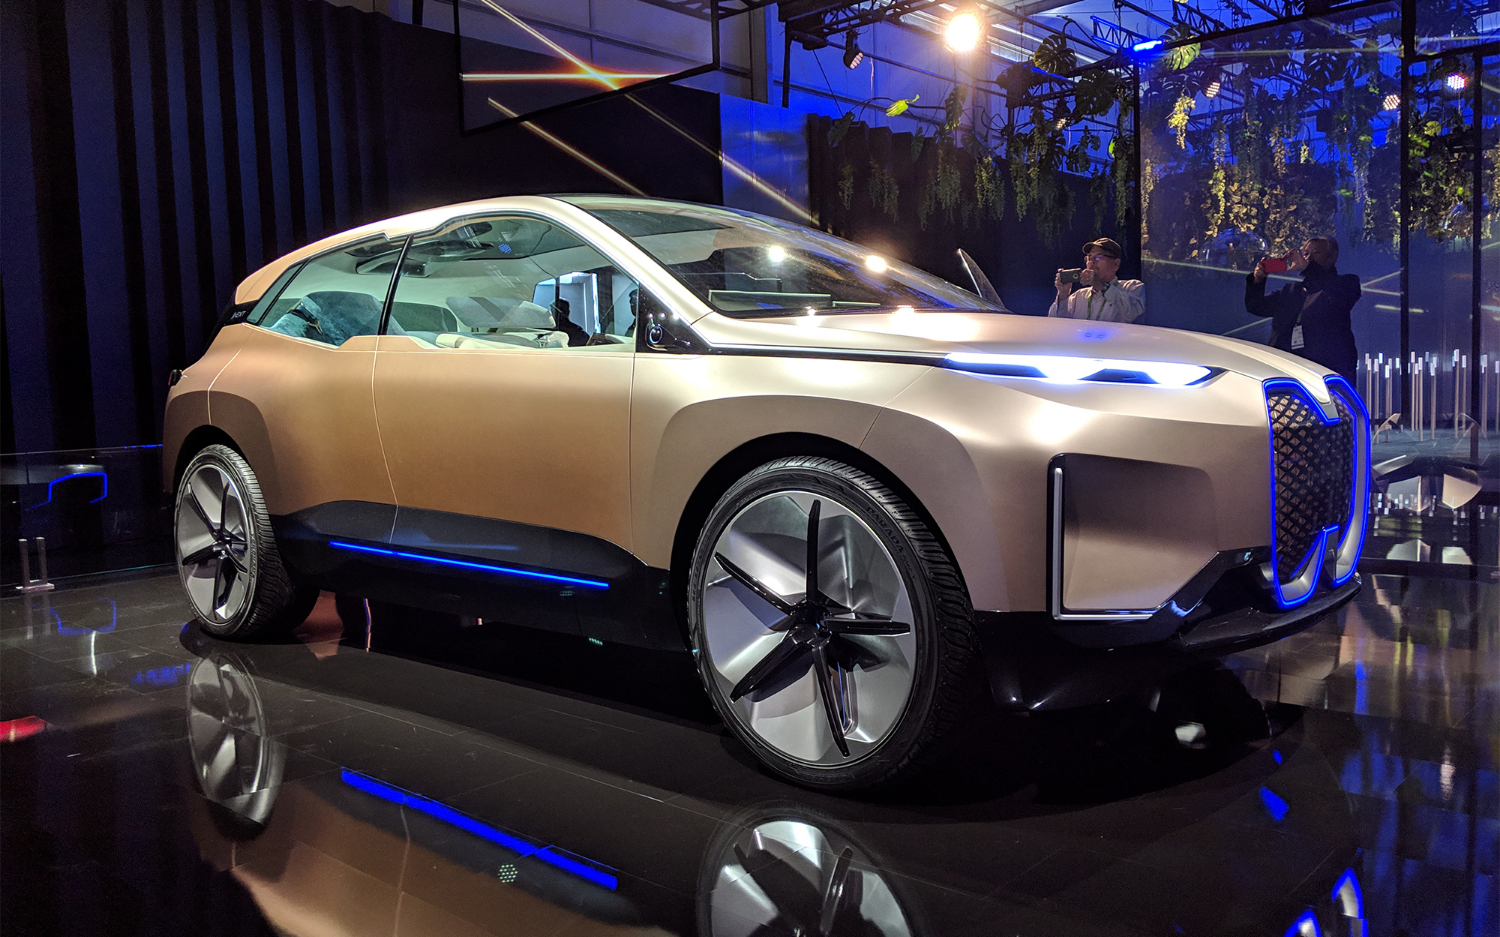 BMW's Vision iNEXT